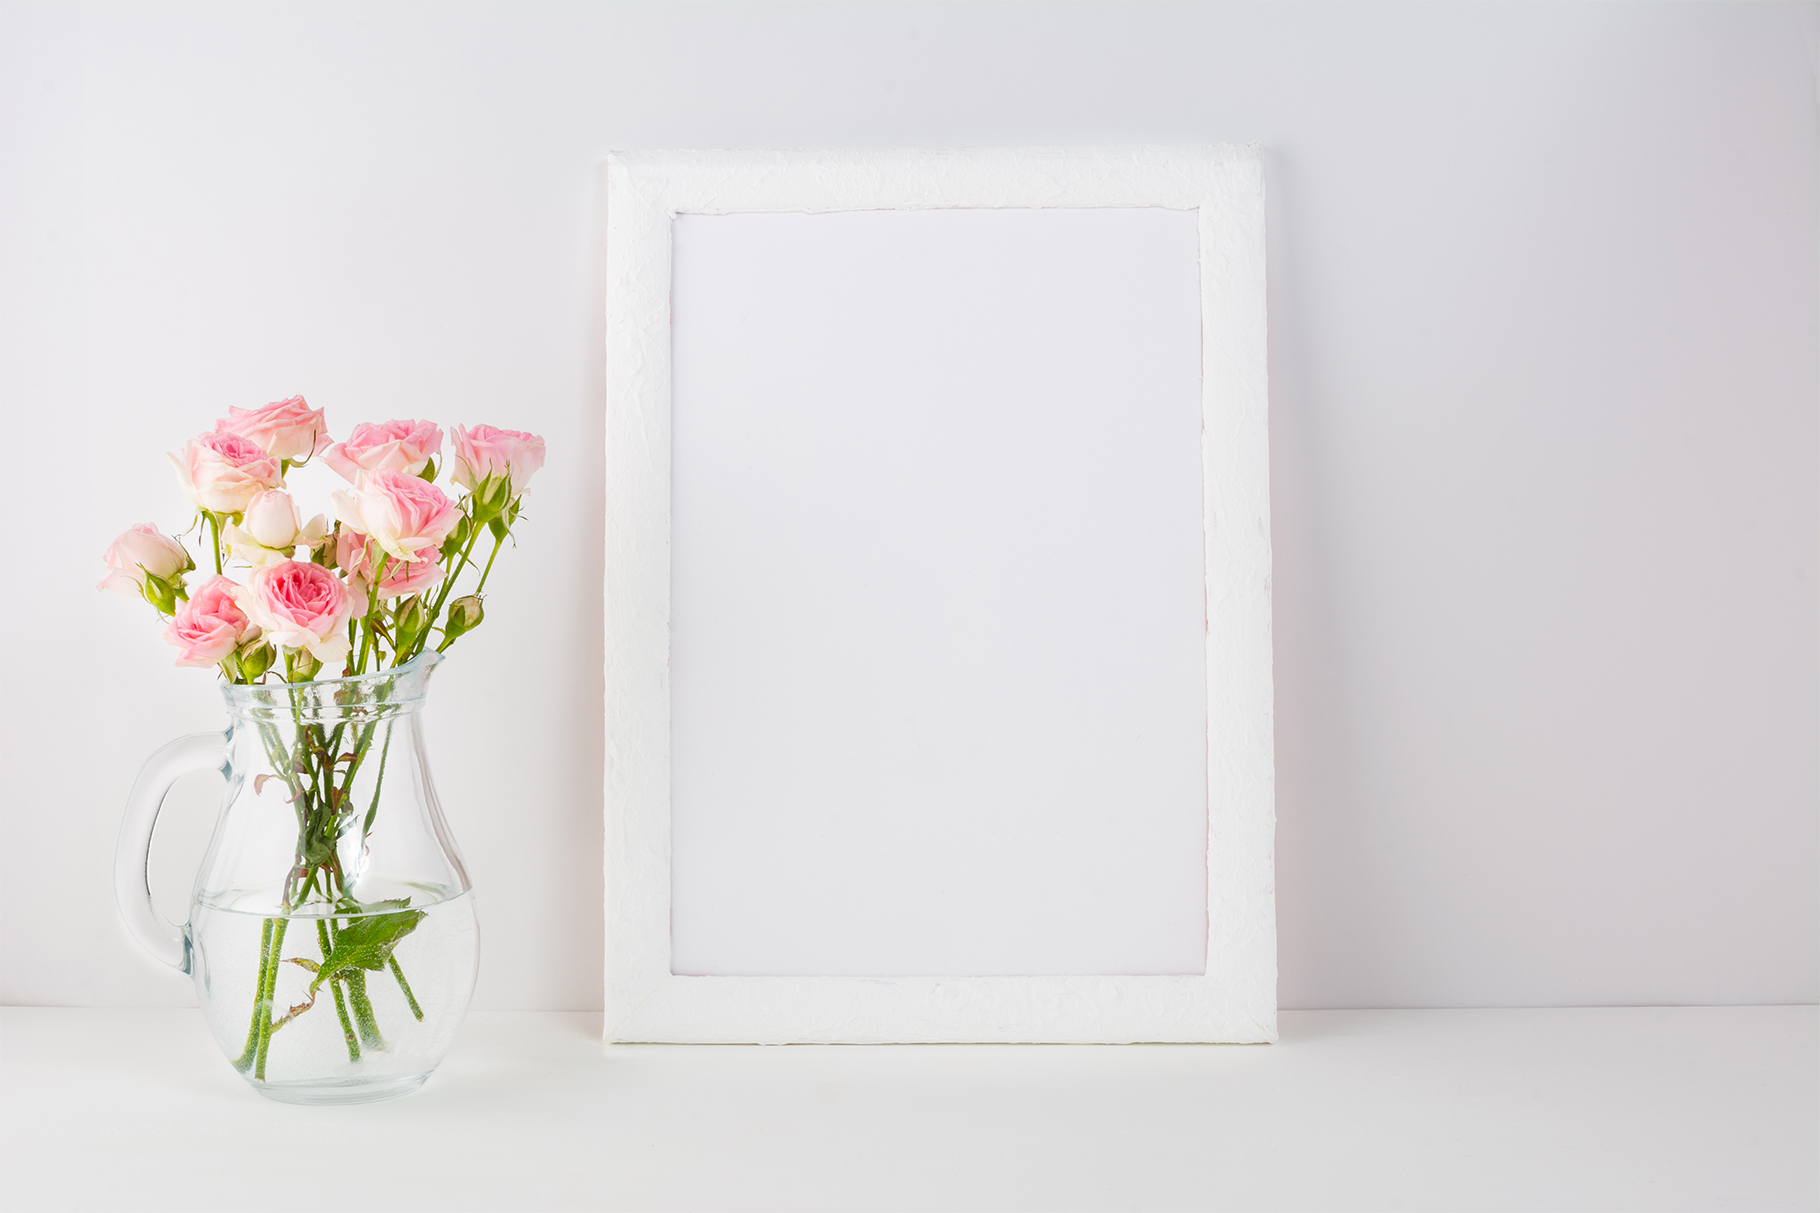 Frame Mockup with Pink Roses Graphic By TasiPas Image 2